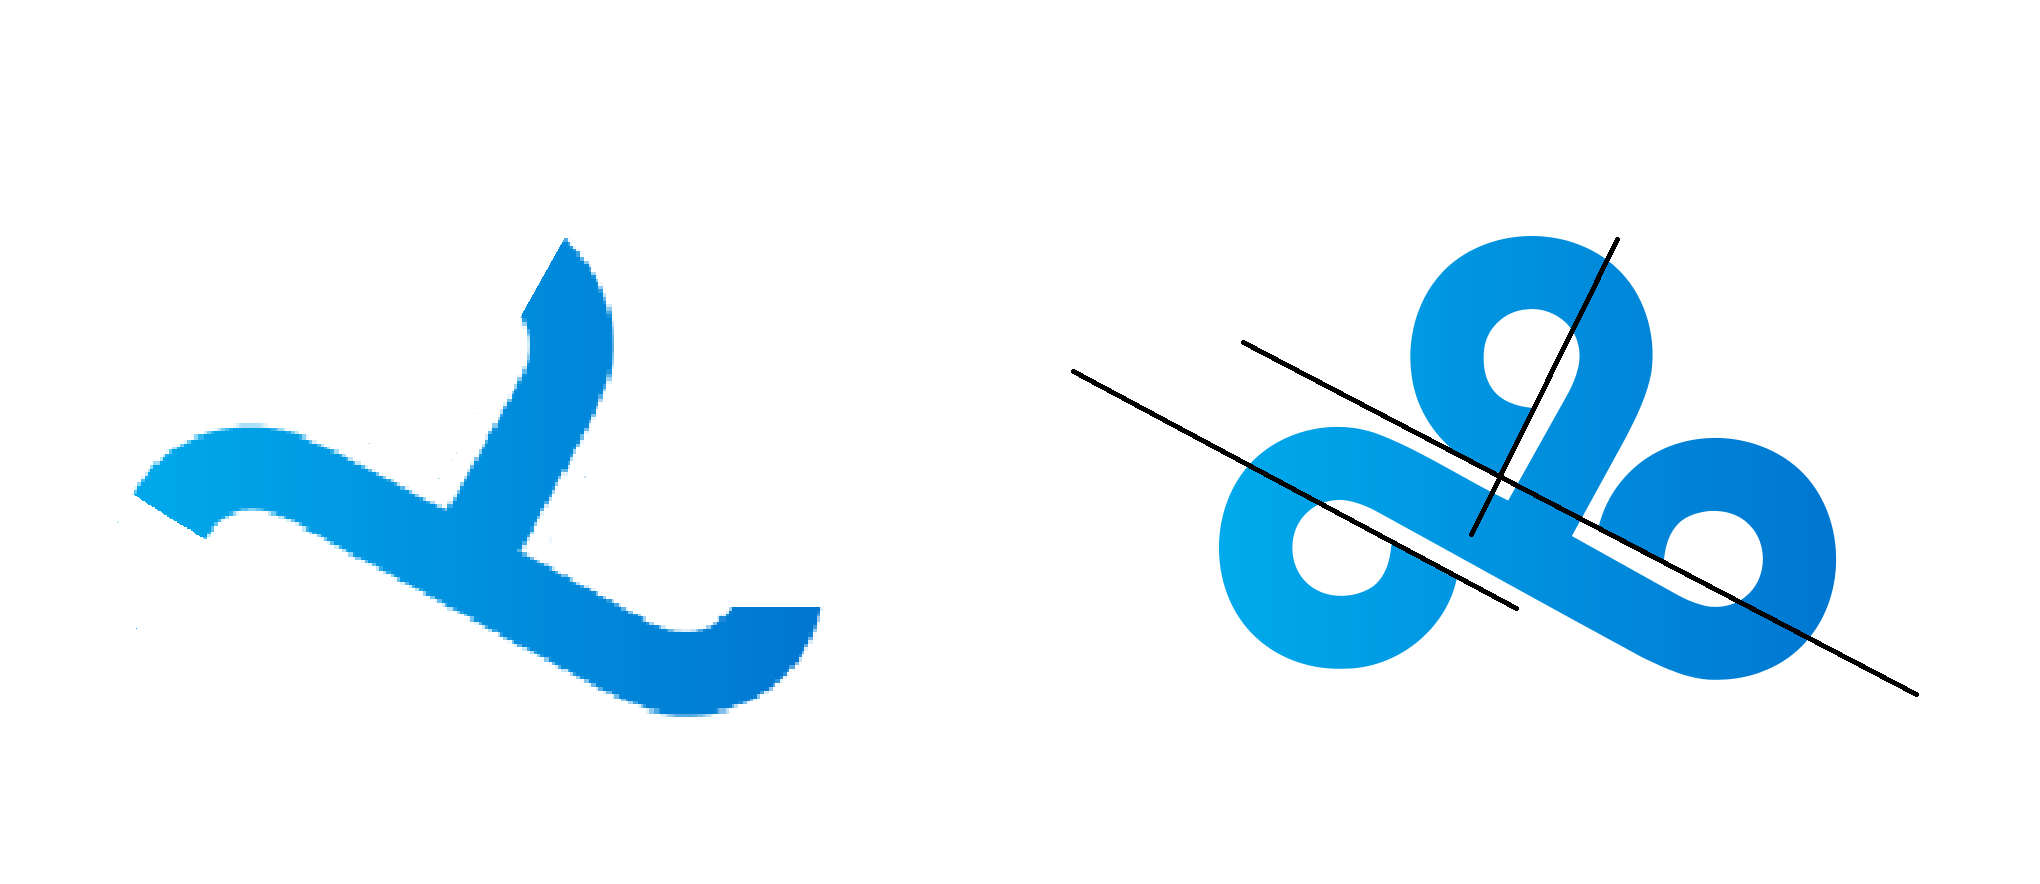 Cloud9 should really fix their logo. As a designer, this.